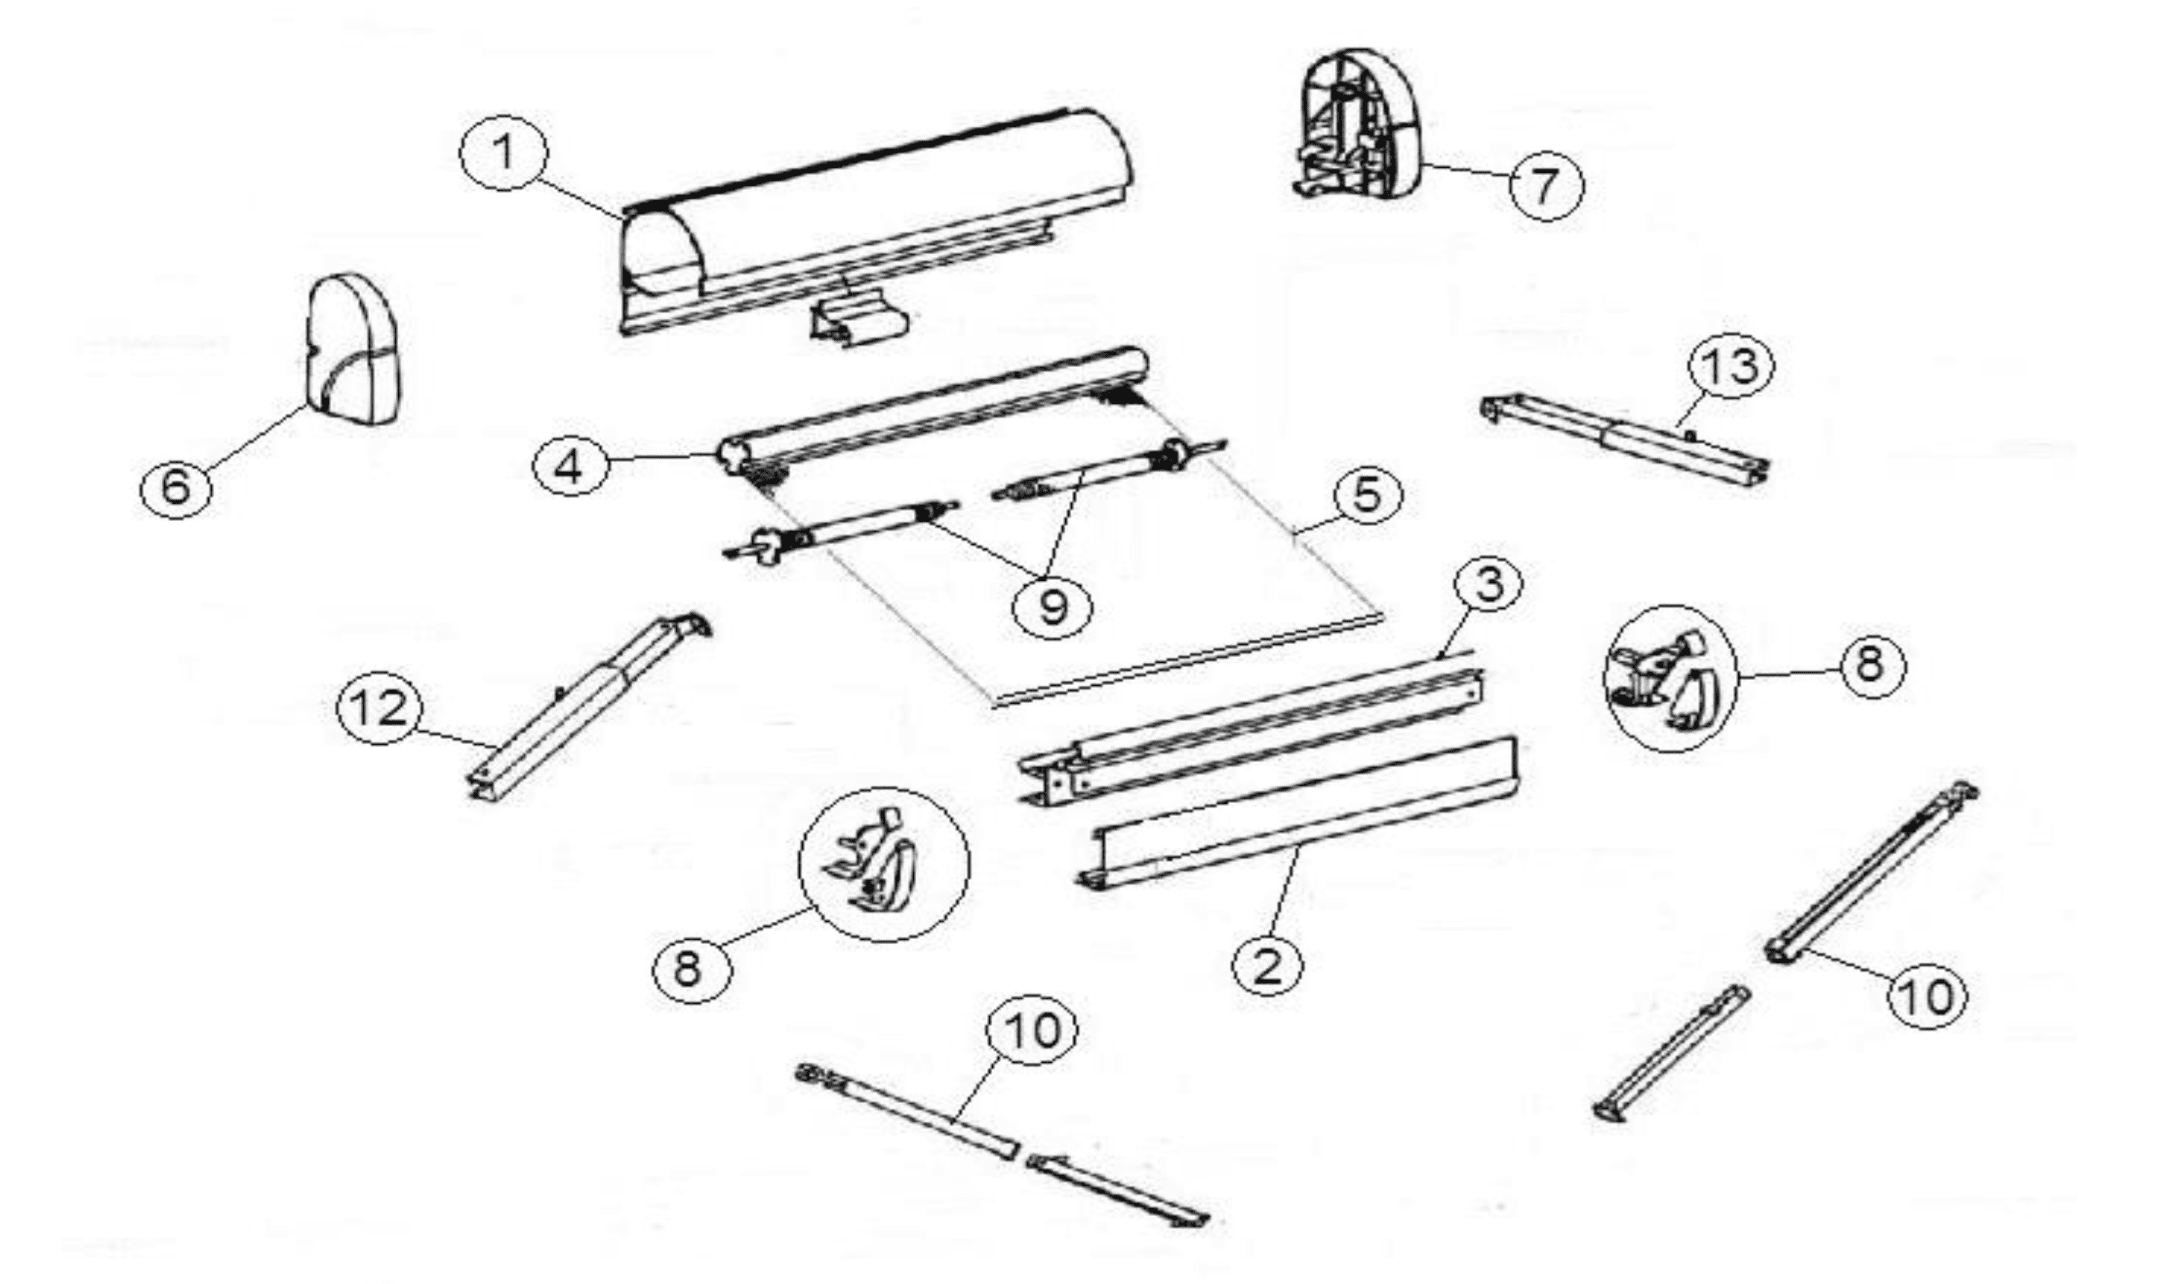 Reparacion Pati es Scooters Electricos further 211951 110 4 Stroke Wiring Diagram Wanted 3 moreover 20 Hp Kohler Engine Wiring Diagram besides Thule Omnistor 2000 Spare Parts furthermore Lifan Mini Chopper Wiring Diagrams. on electric bike wiring diagram